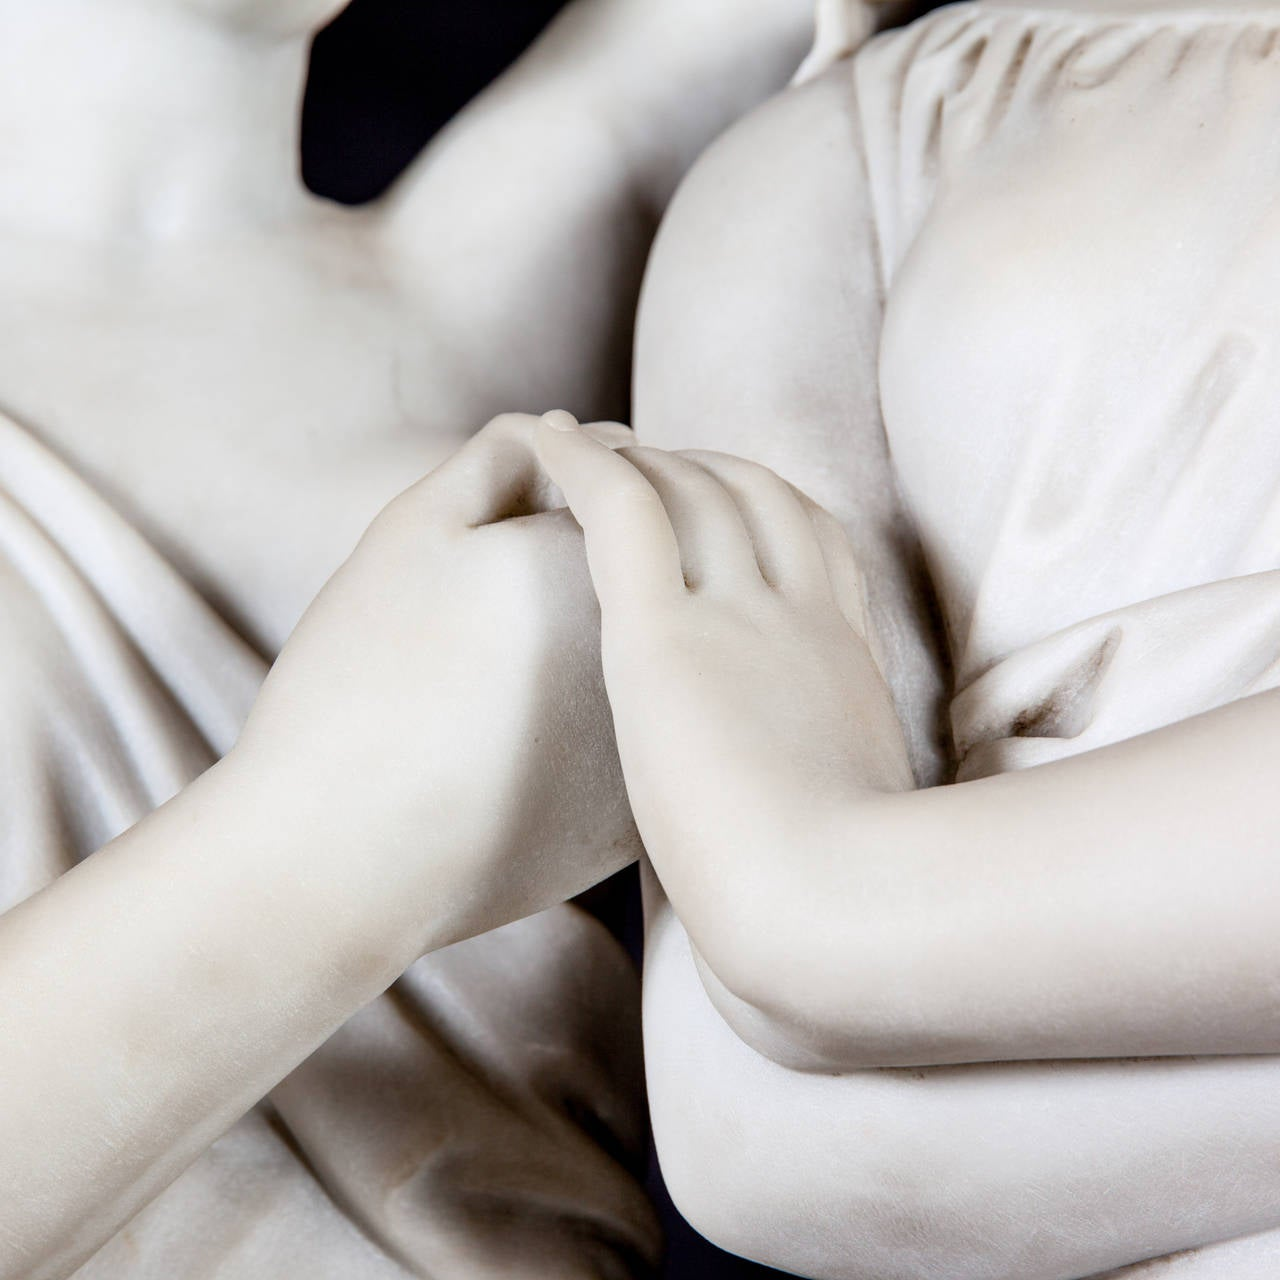 Carved Marble Sculpture of the Three Graces Crowning Venus by Antonio Frilli